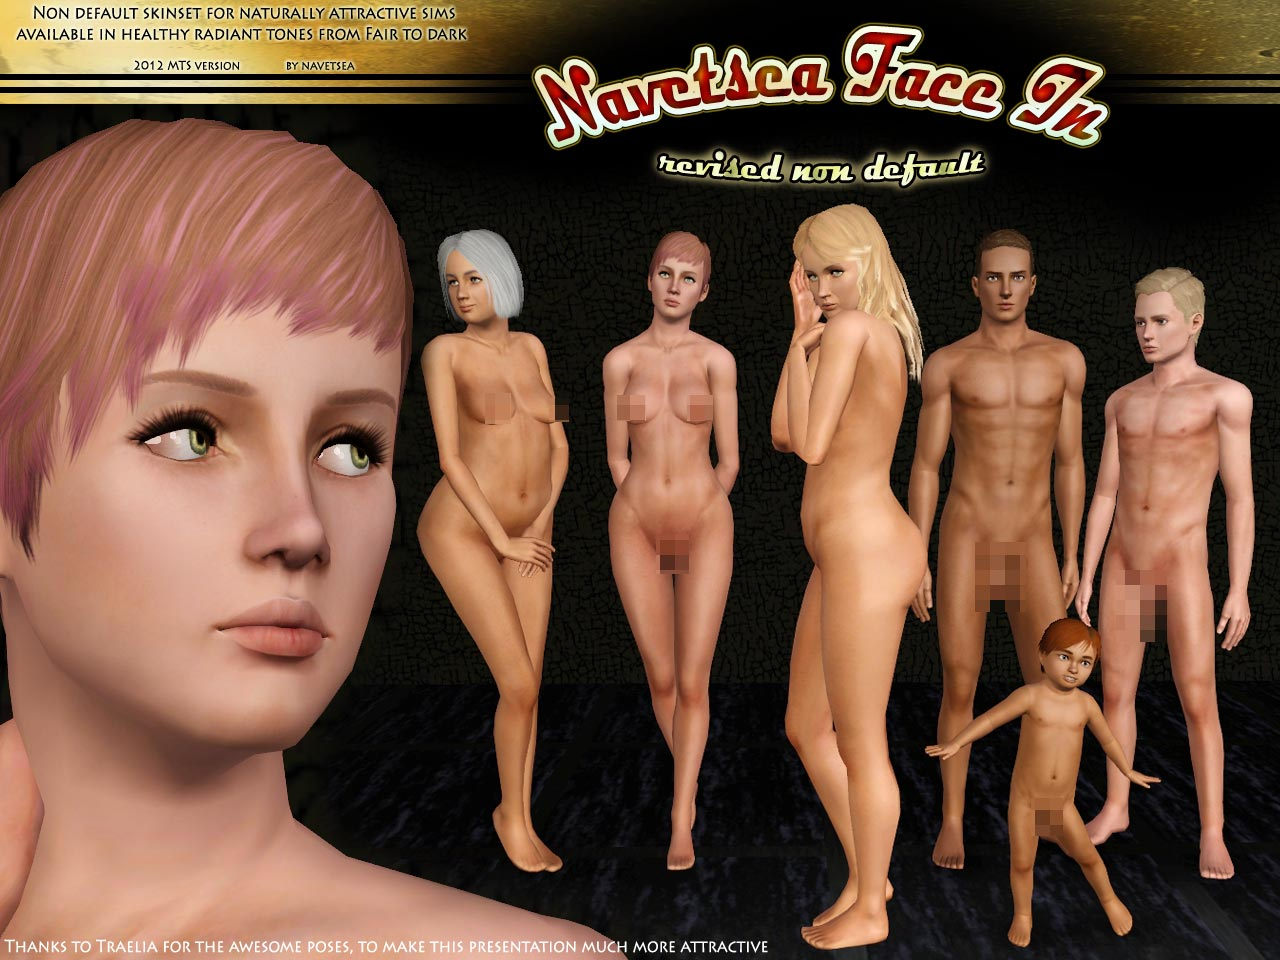 Remarkable, rather Downloads nude sims skin are absolutely